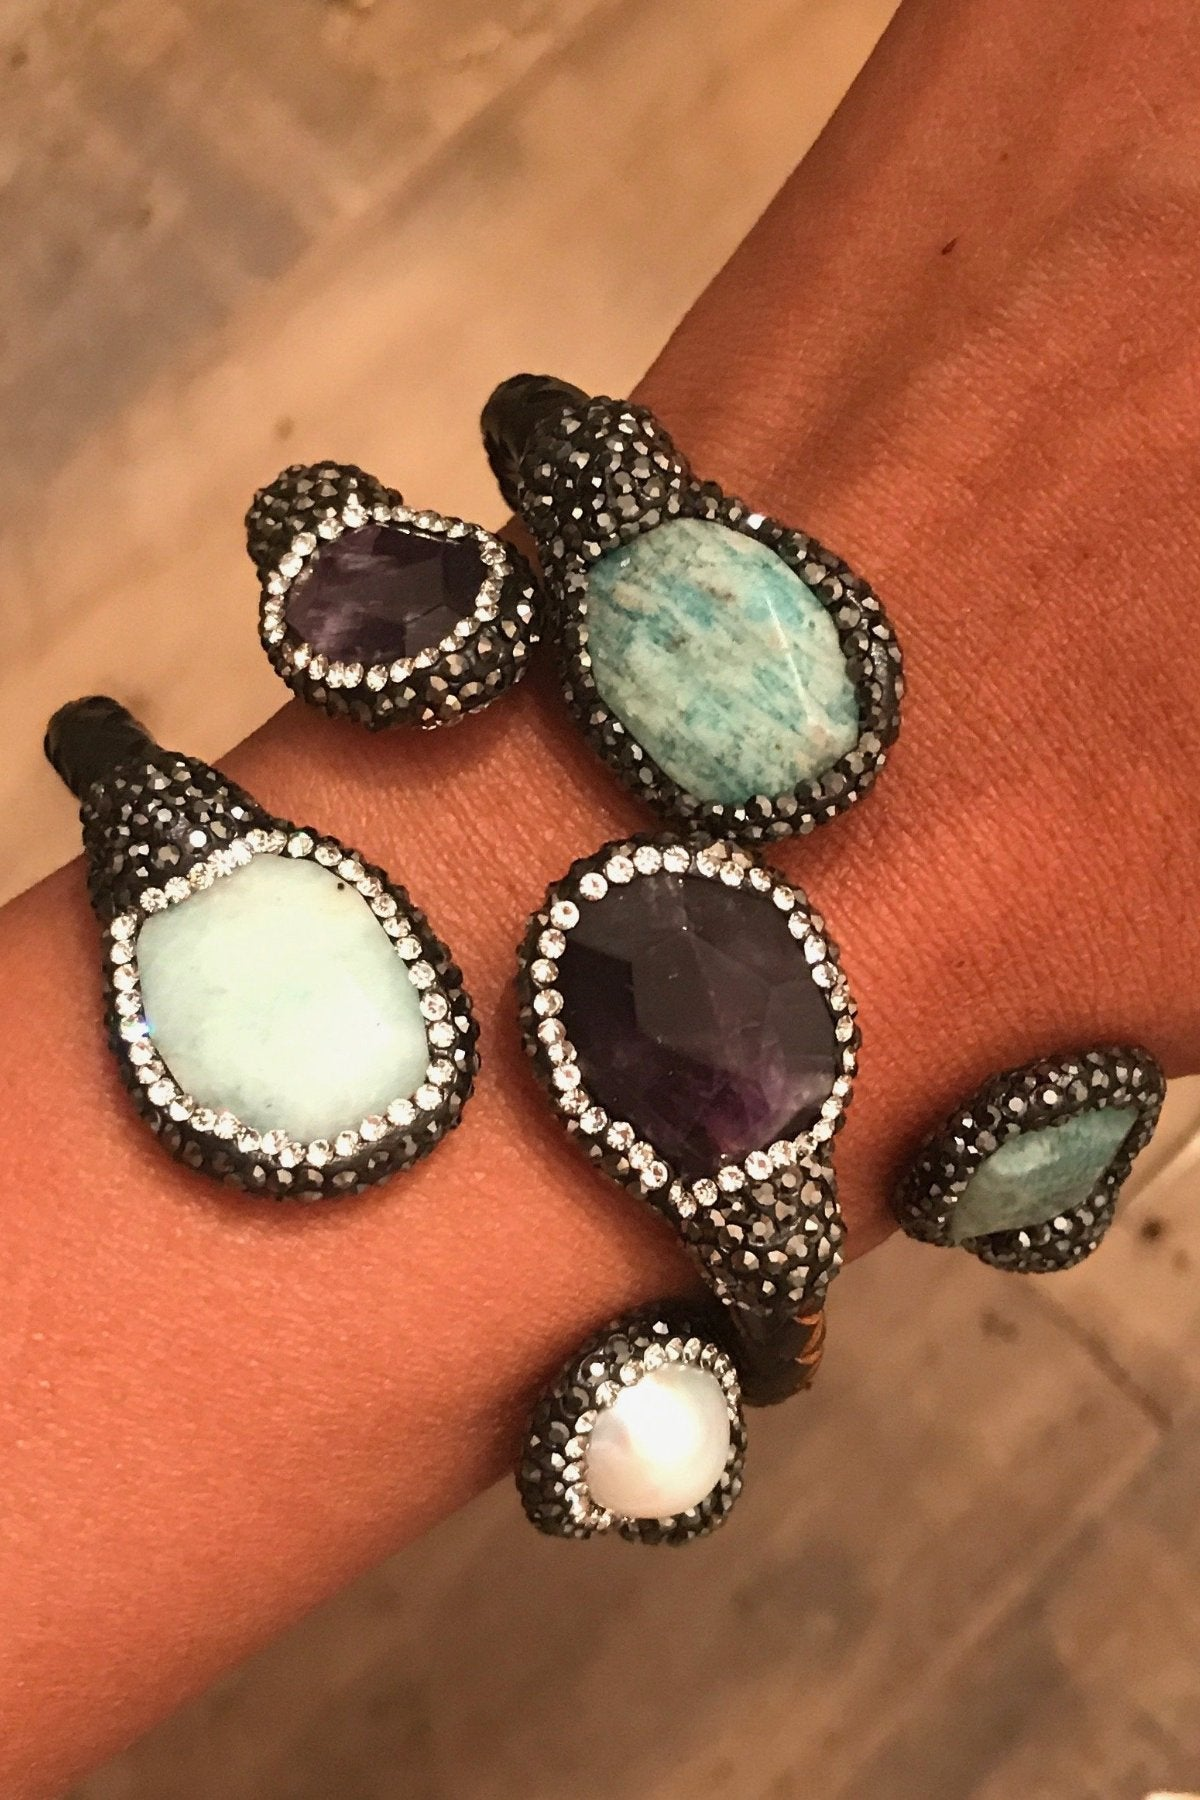 Bejeweled Wrap Bands